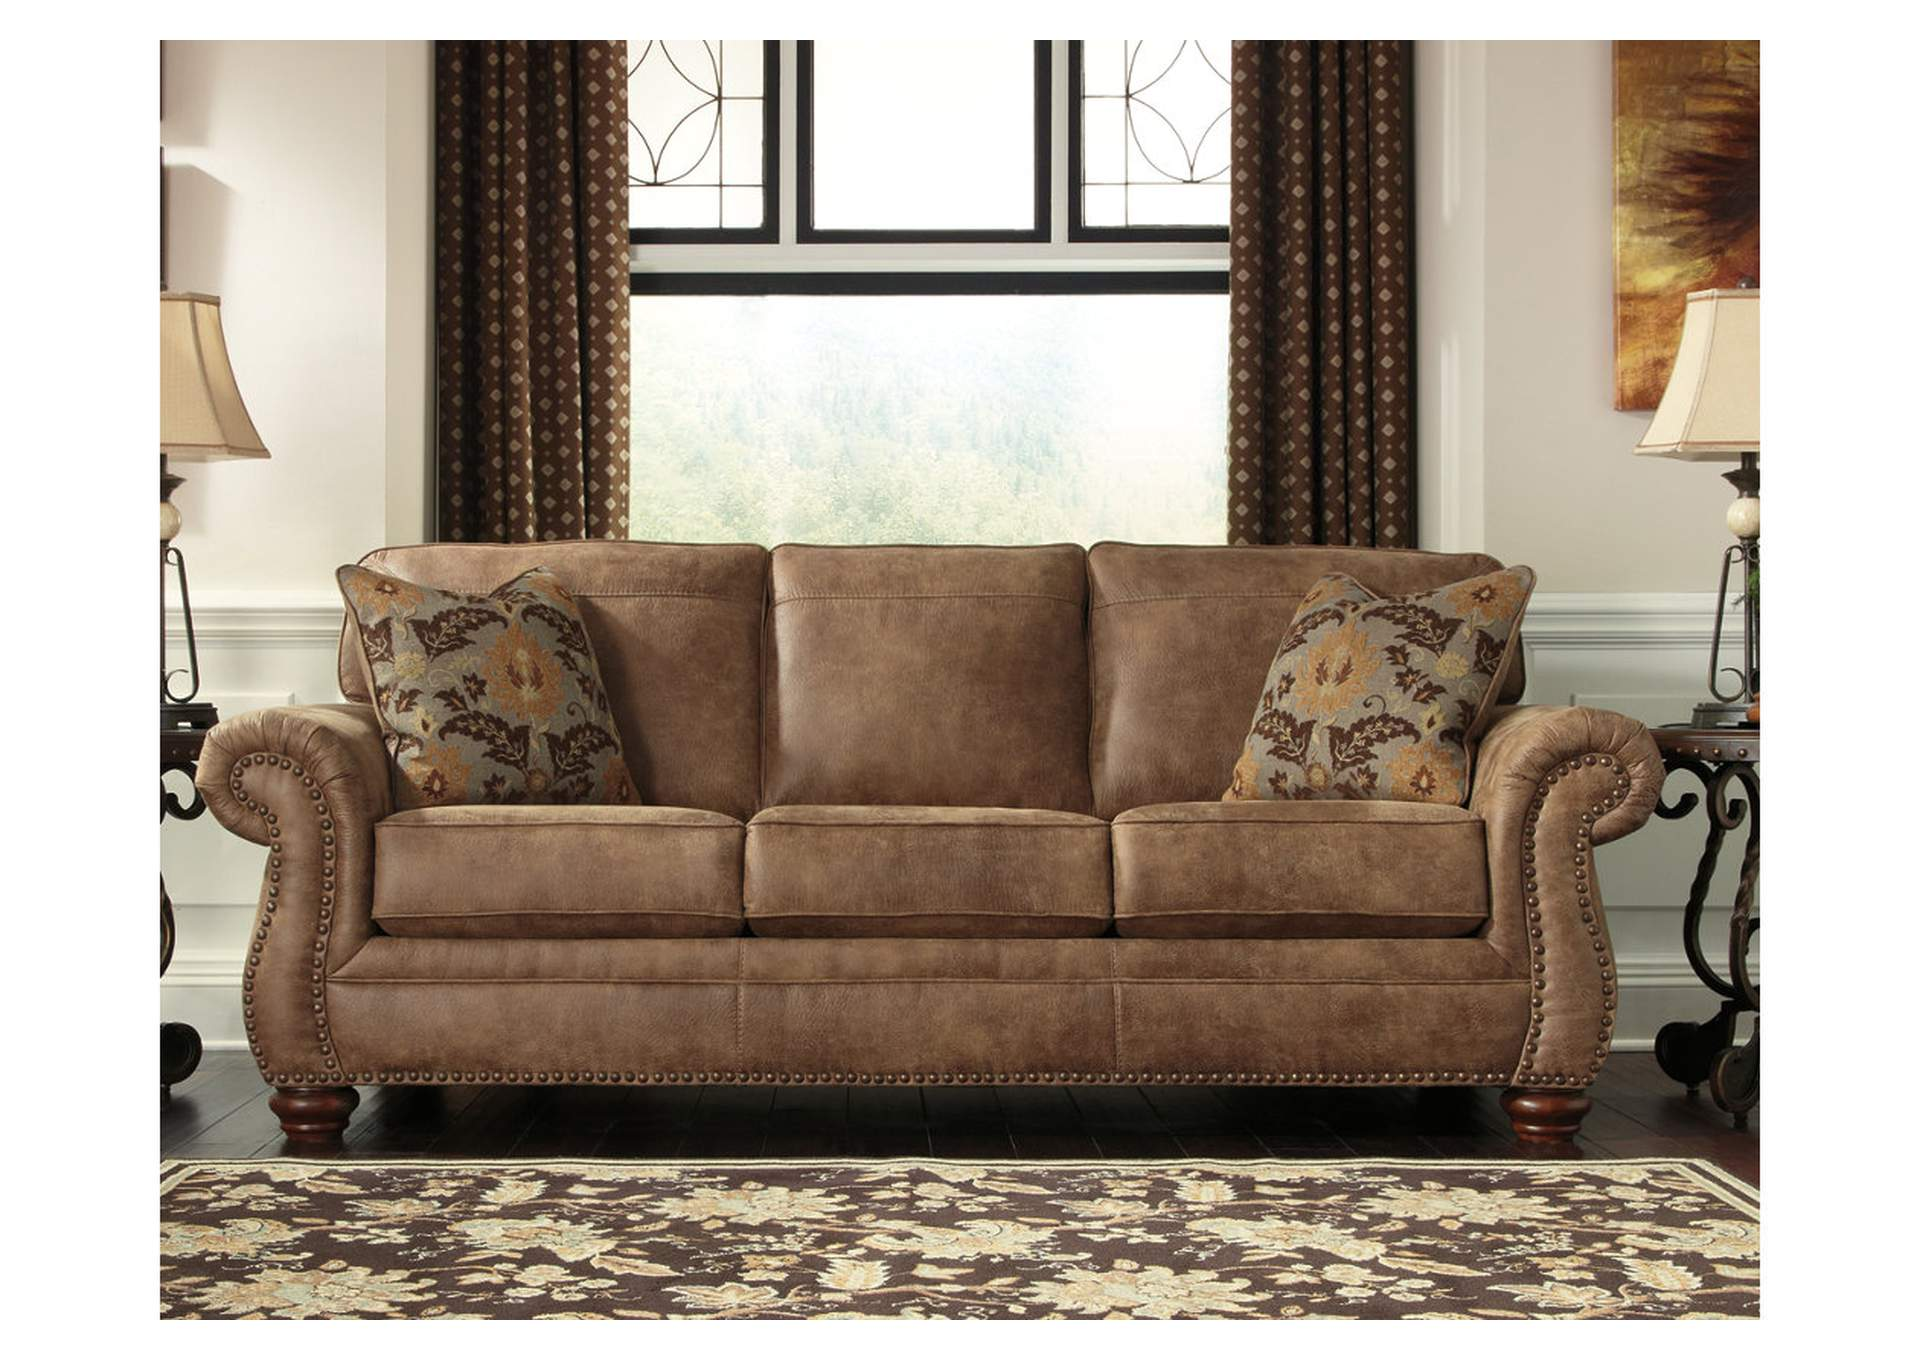 Larkinhurst Earth Queen Sofa Sleeper,Signature Design By Ashley